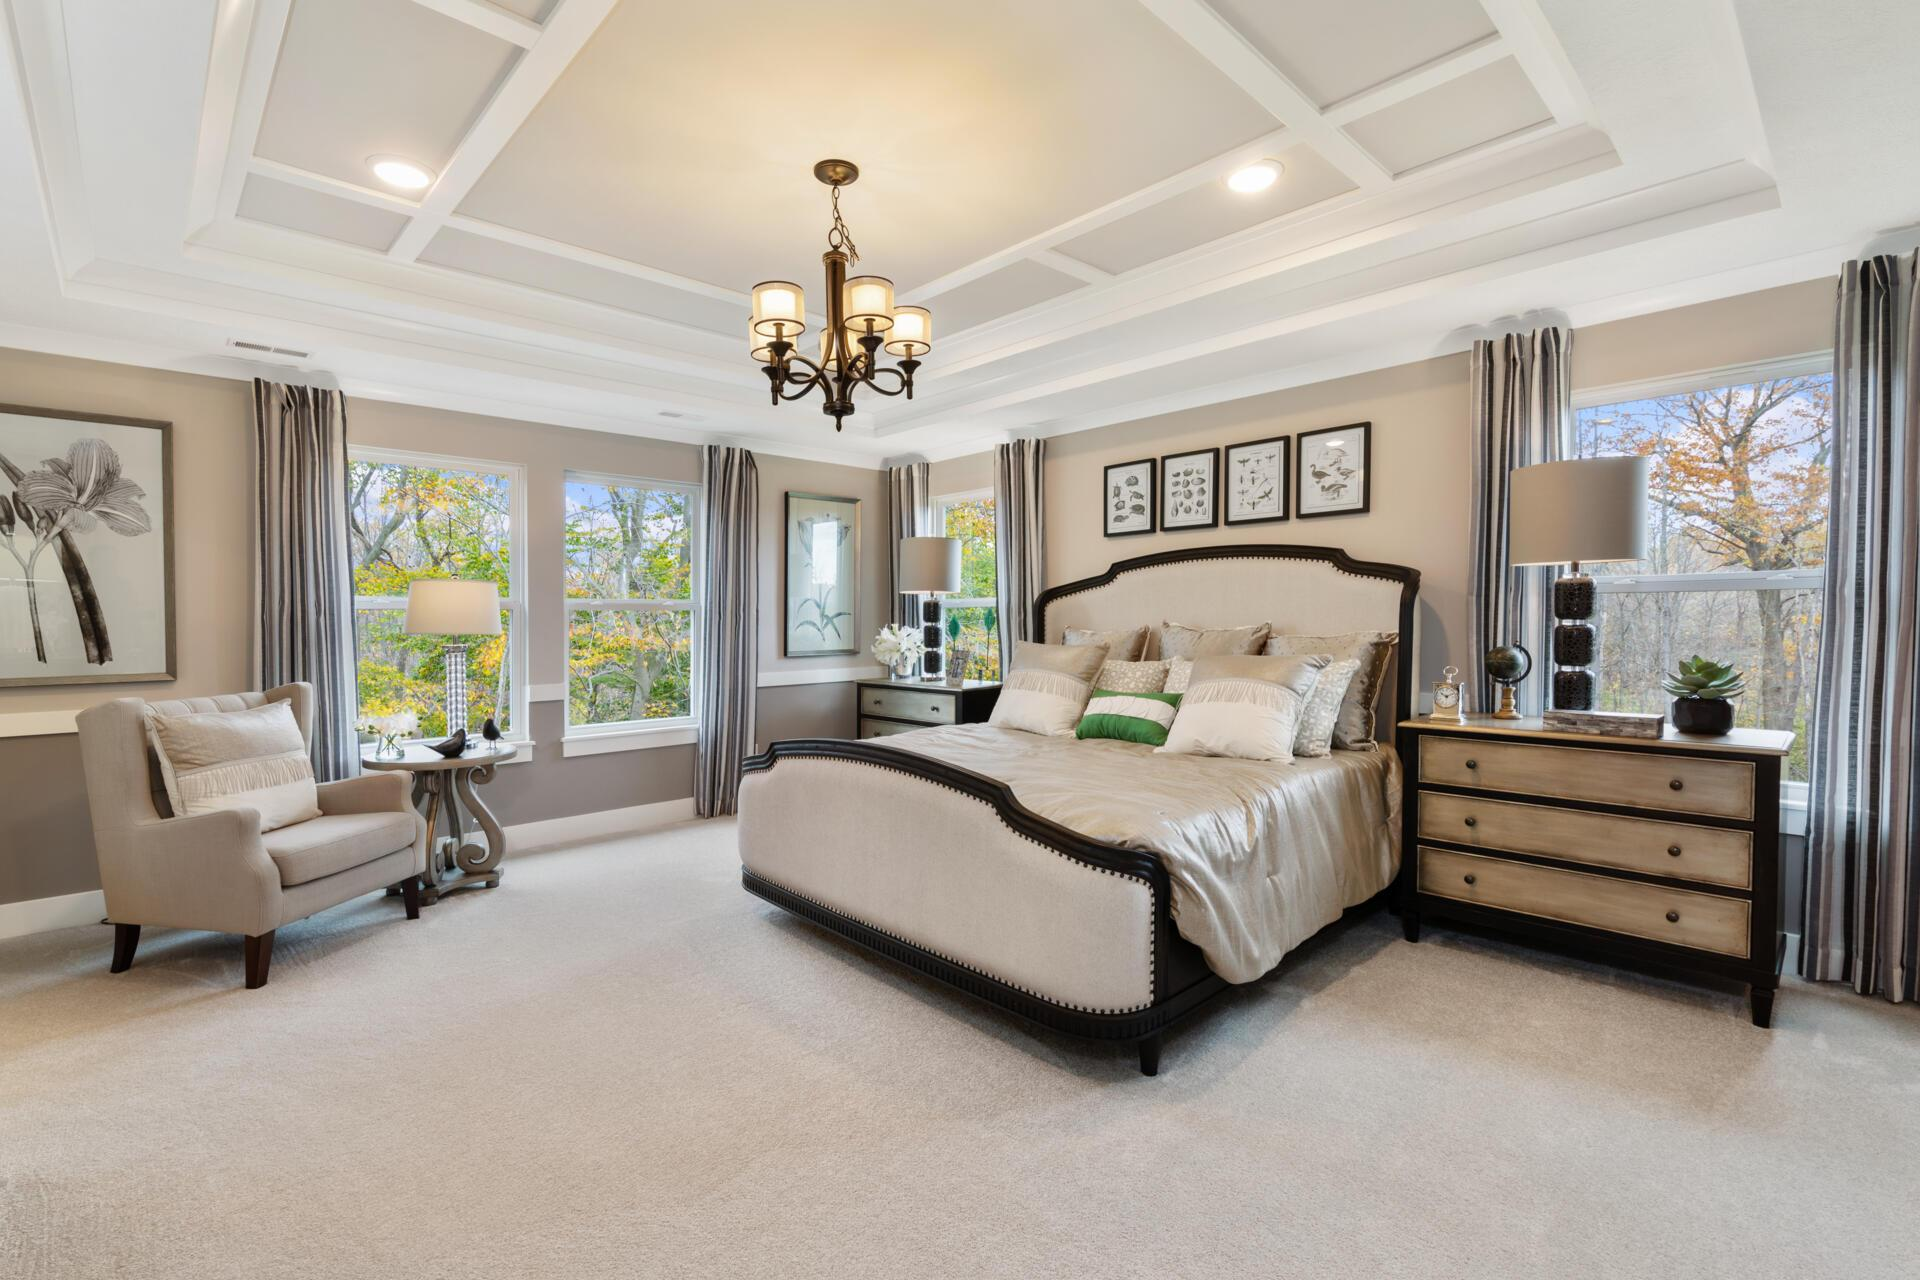 Bedroom featured in the Vanderburgh By Drees Homes in Cleveland, OH